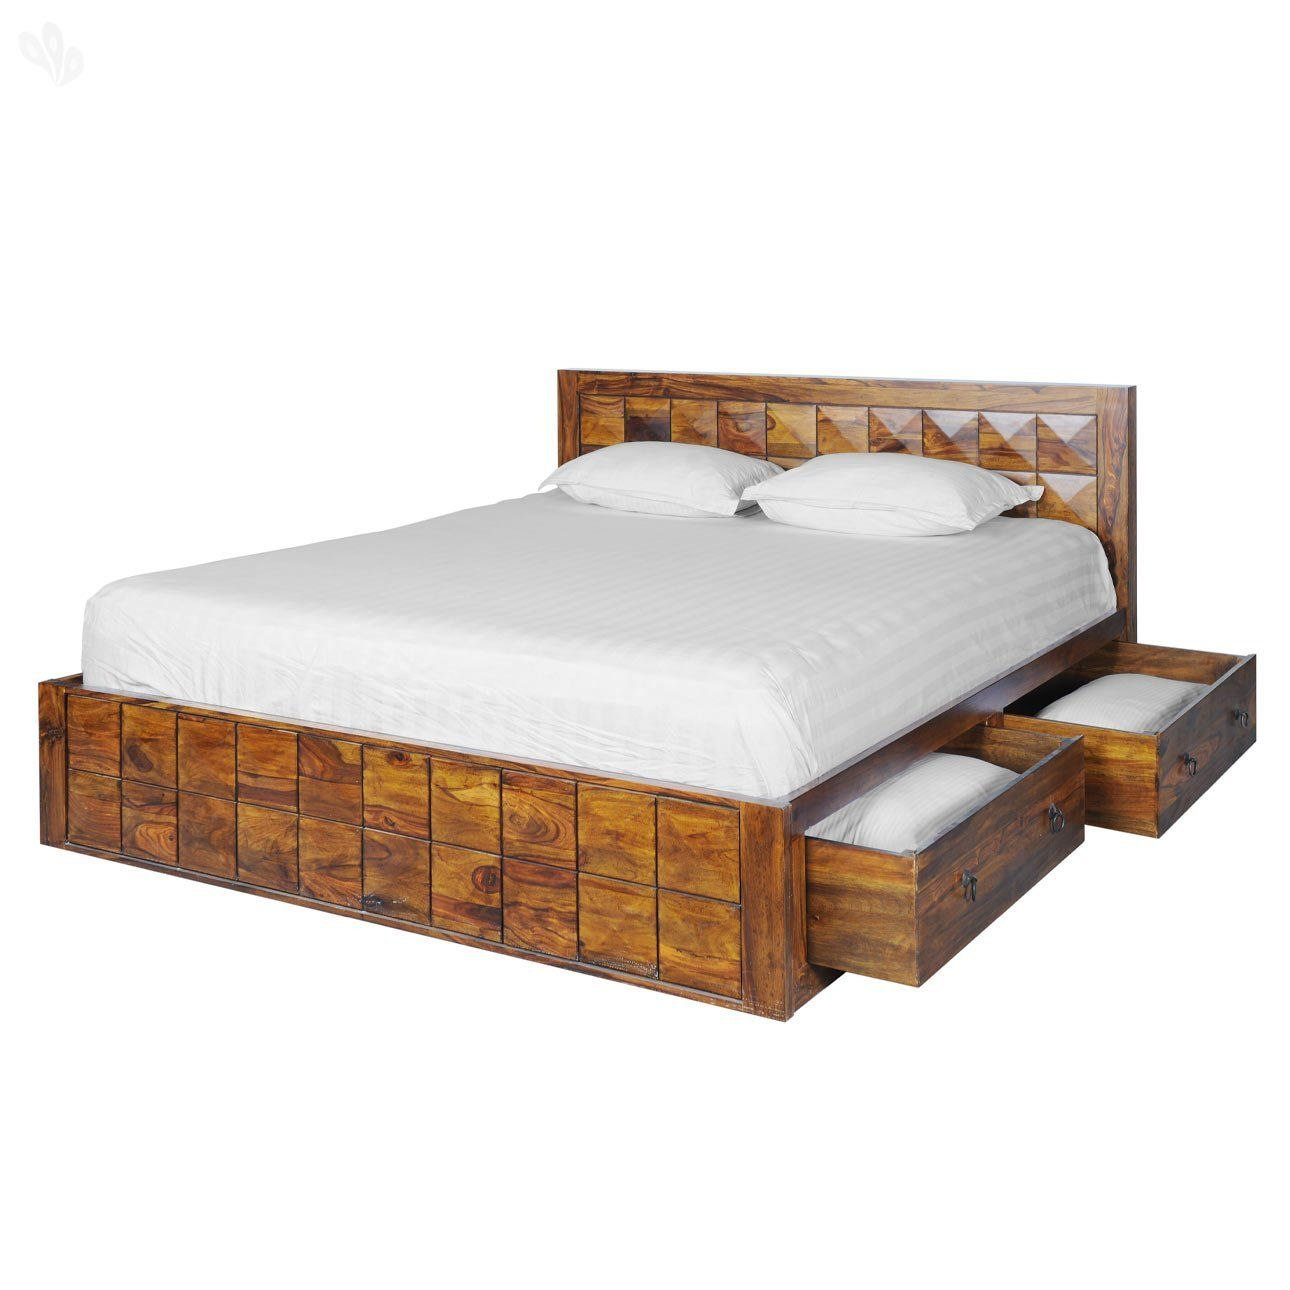 Royal Oak Sapphire Bd20151001 5s Queen Size Bed With Storage